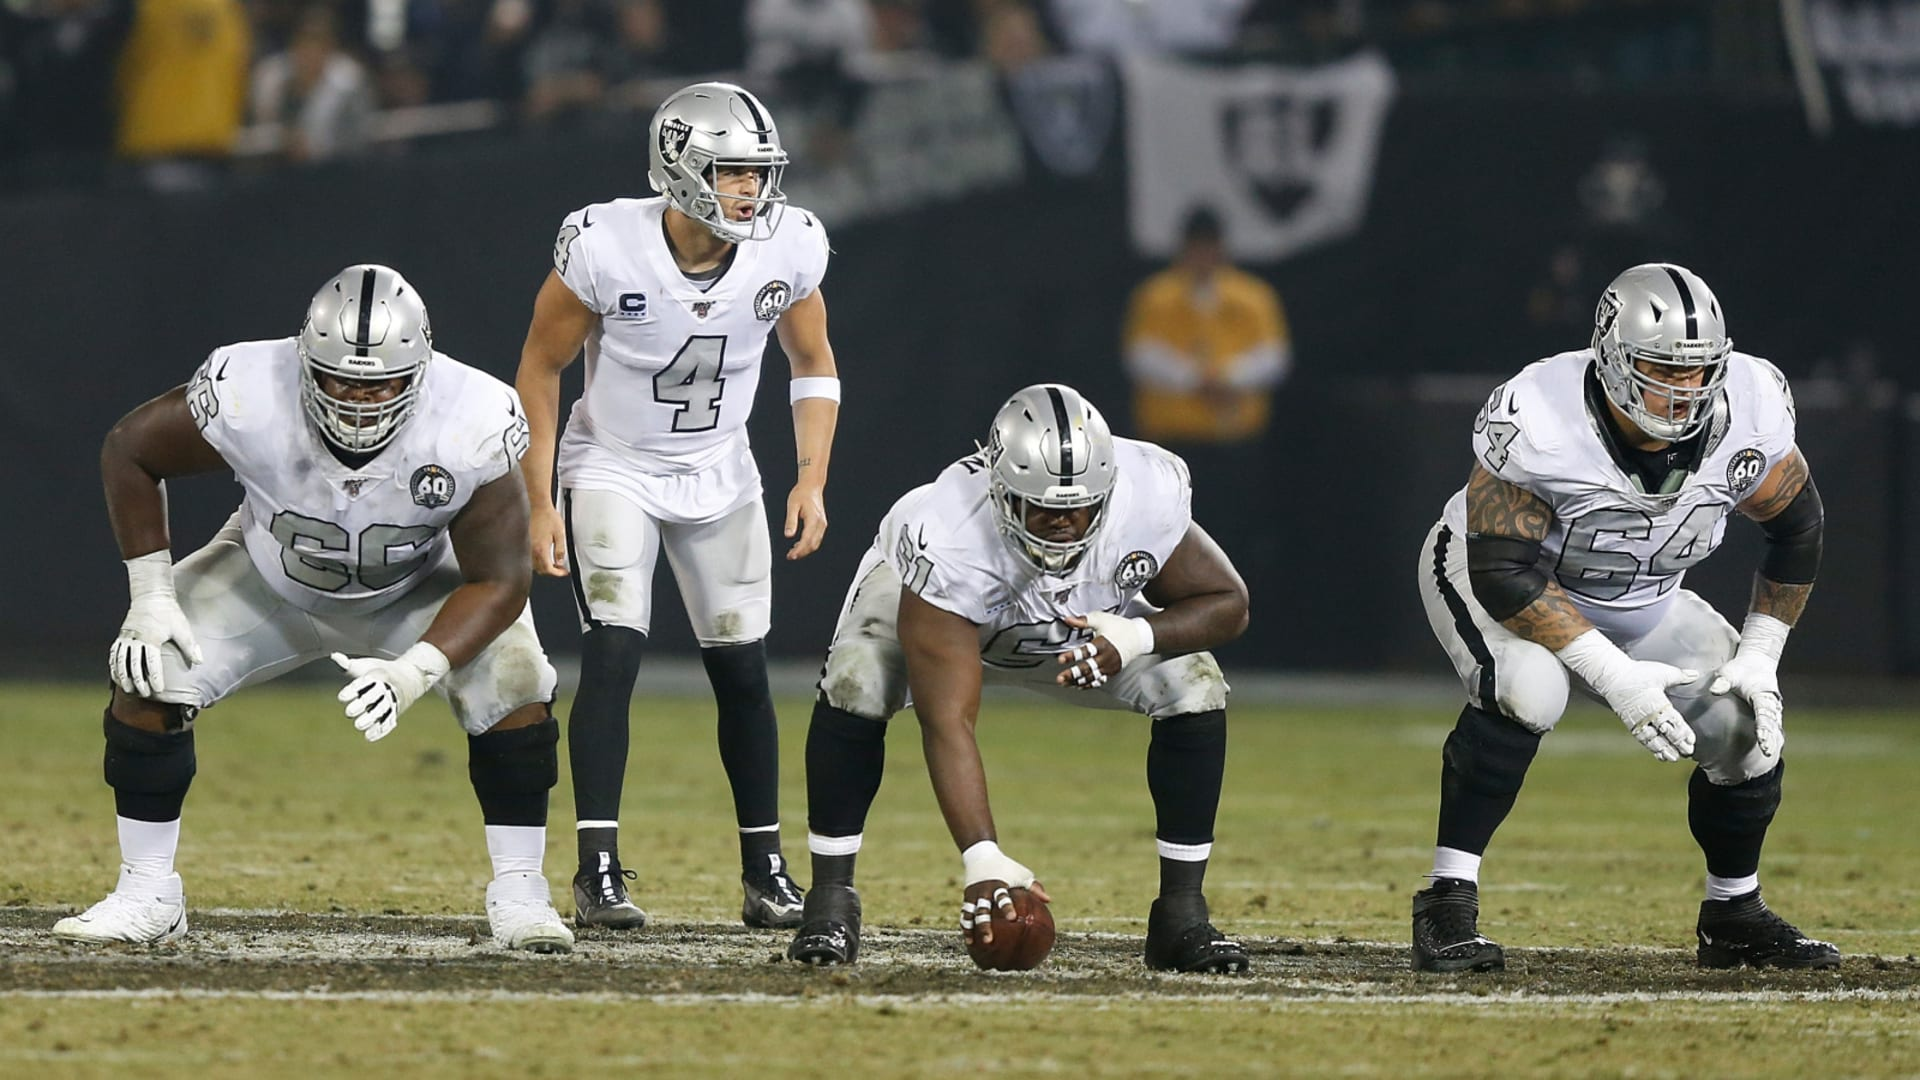 Las Vegas Raiders offensive line best in NFL according to PFF